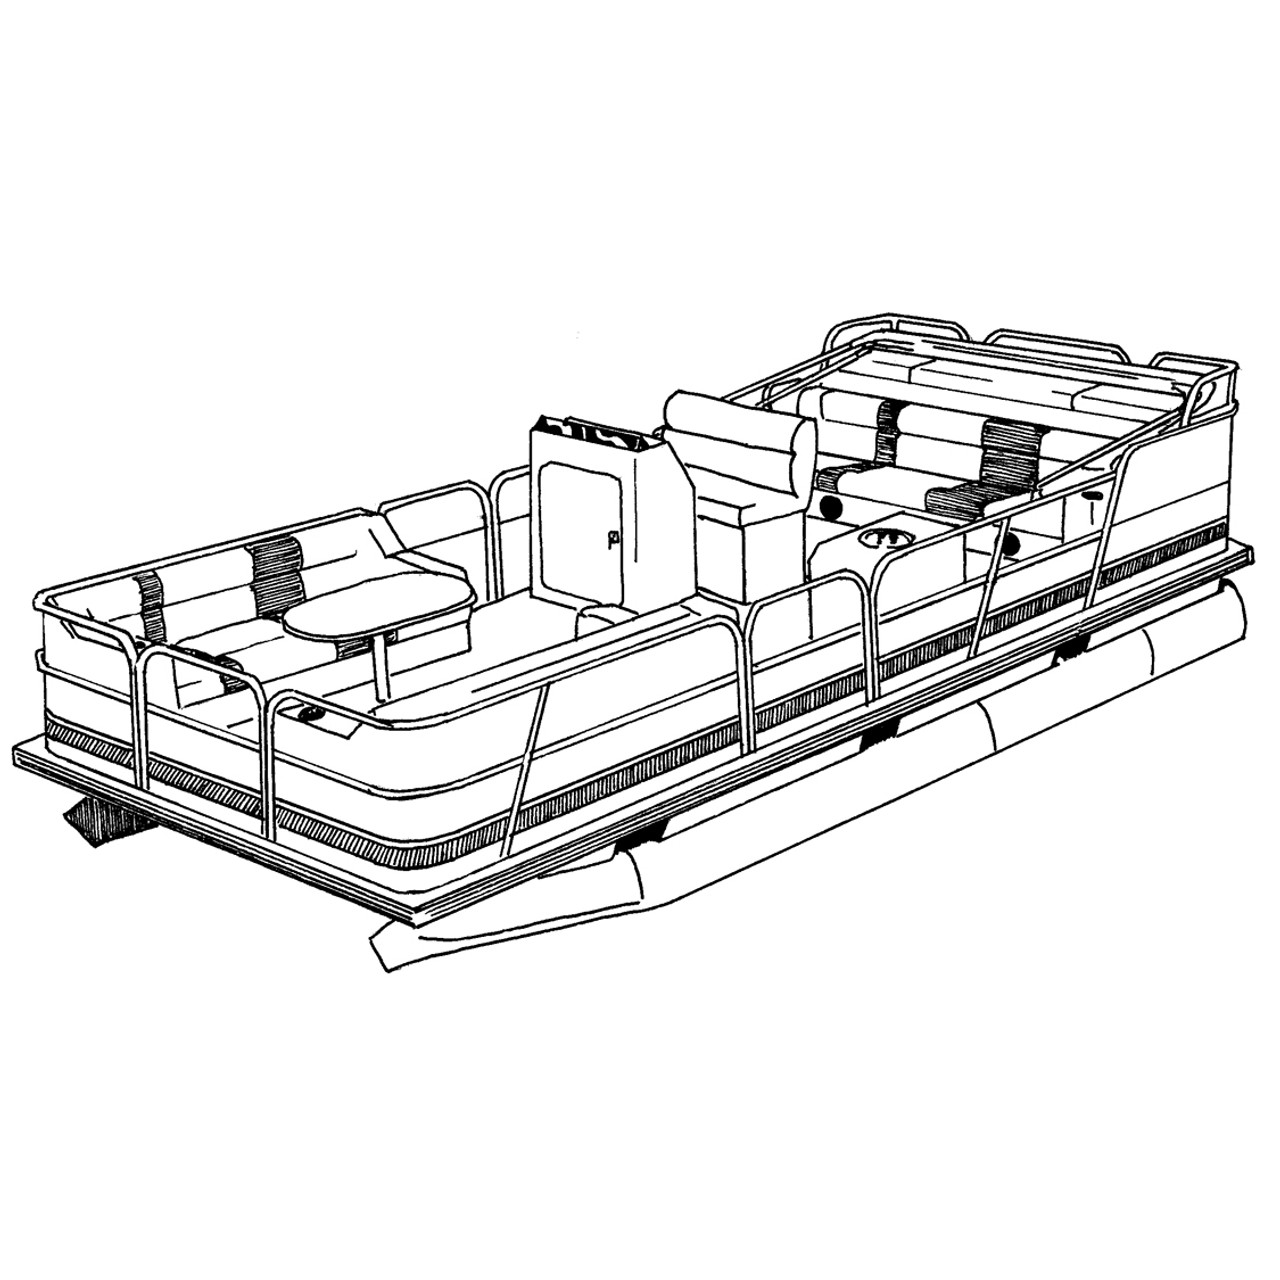 small resolution of cover fits pontoon with bimini top and rails that fully enclose deck